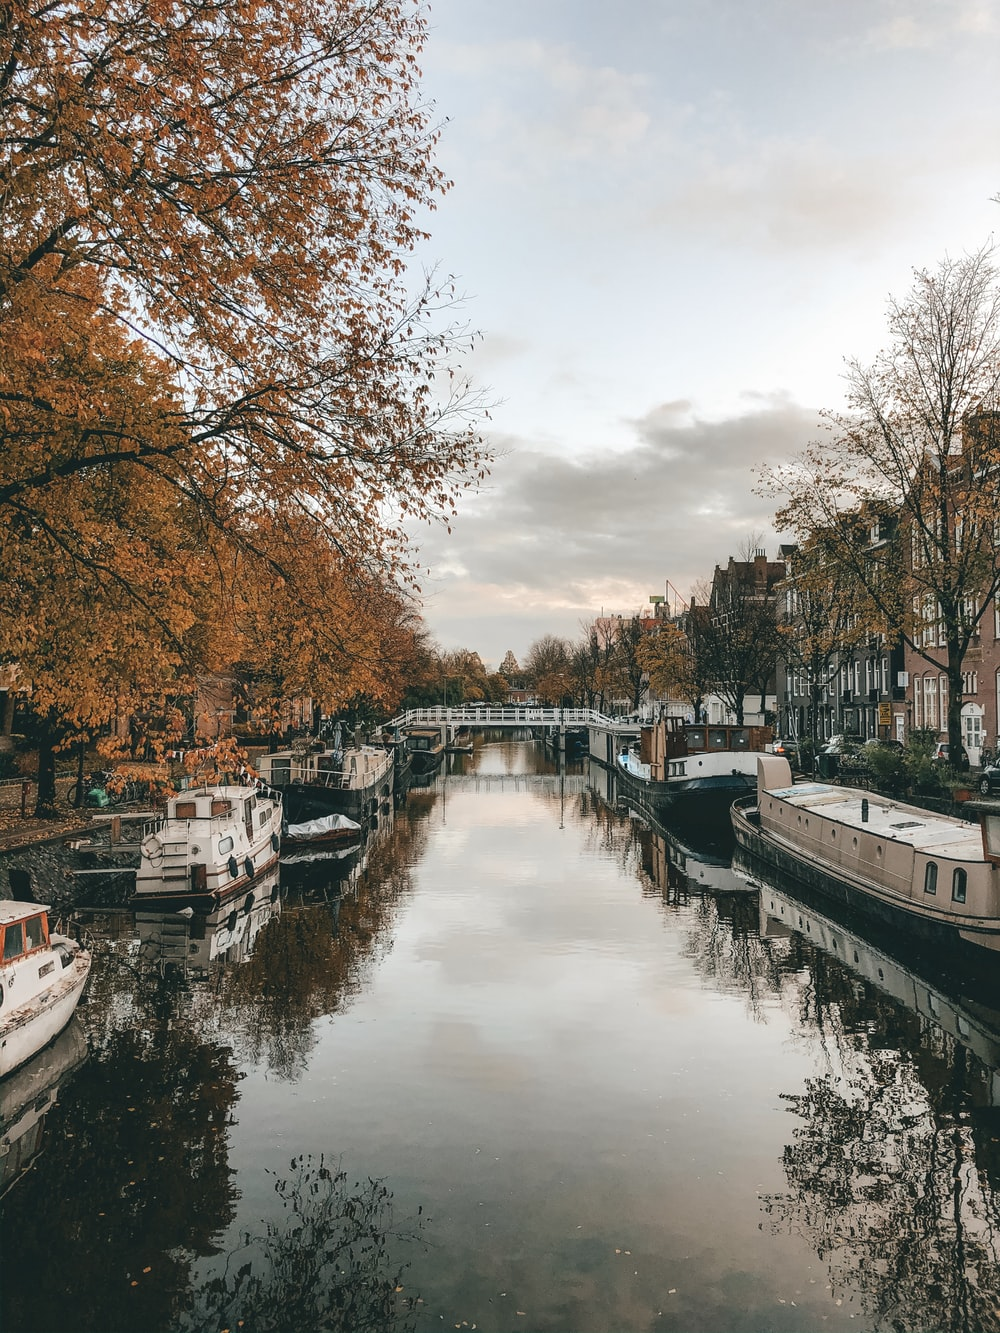 boats floating on a canal